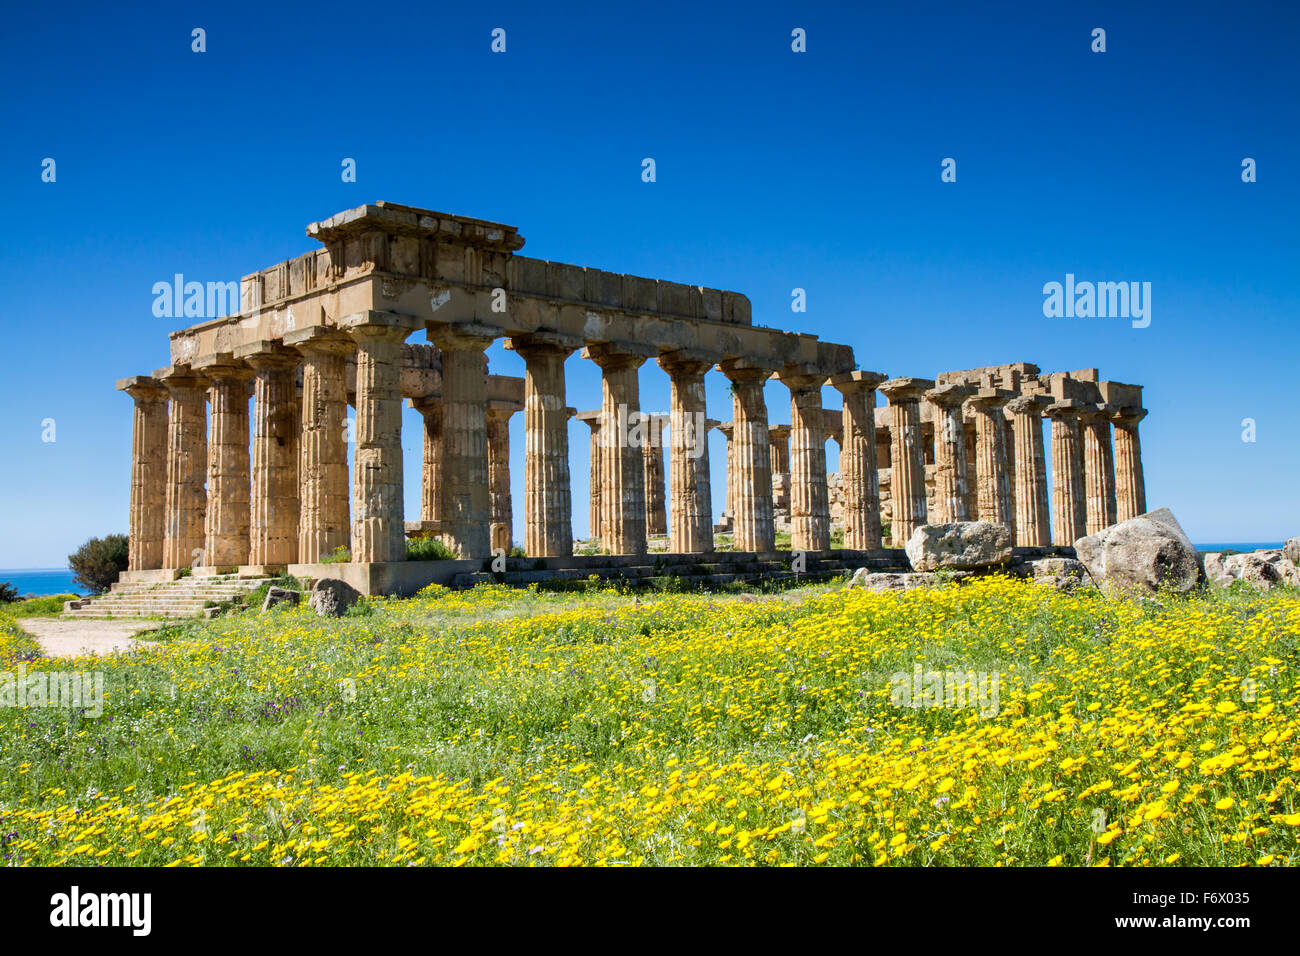 Temple grec à Selinunte au printemps, Sicile, Italie Photo Stock